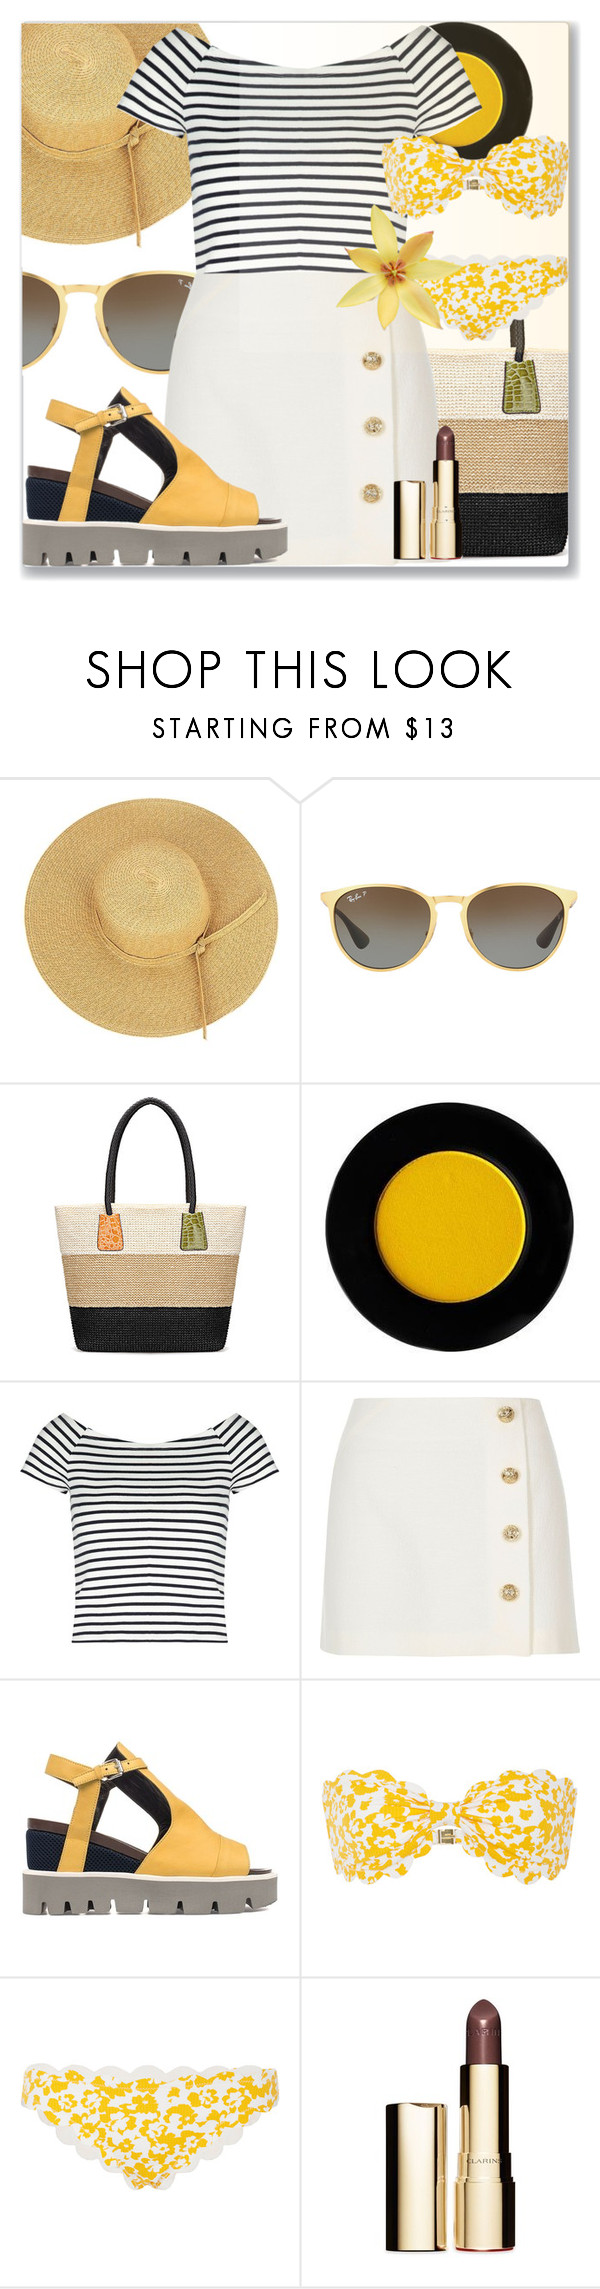 """Summer brunch"" by jan31 ❤ liked on Polyvore featuring Ray-Ban, Lipsy, River Island, Strategia, Marysia Swim and Clarins"